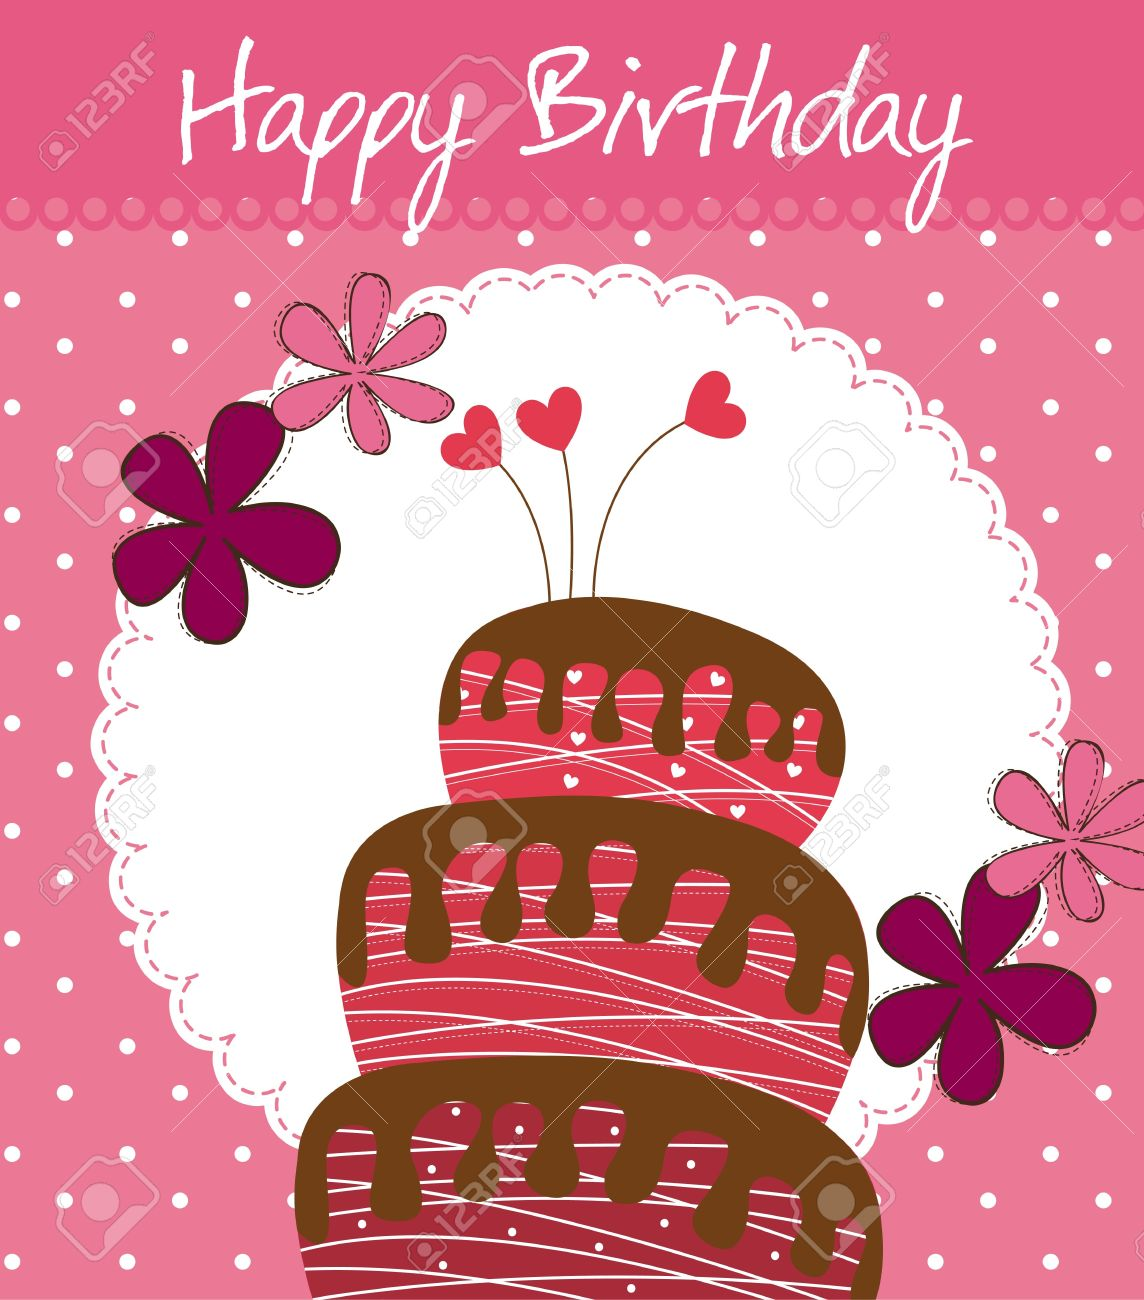 Birthday Card With Cake And Flowers Royalty Free Cliparts Vectors